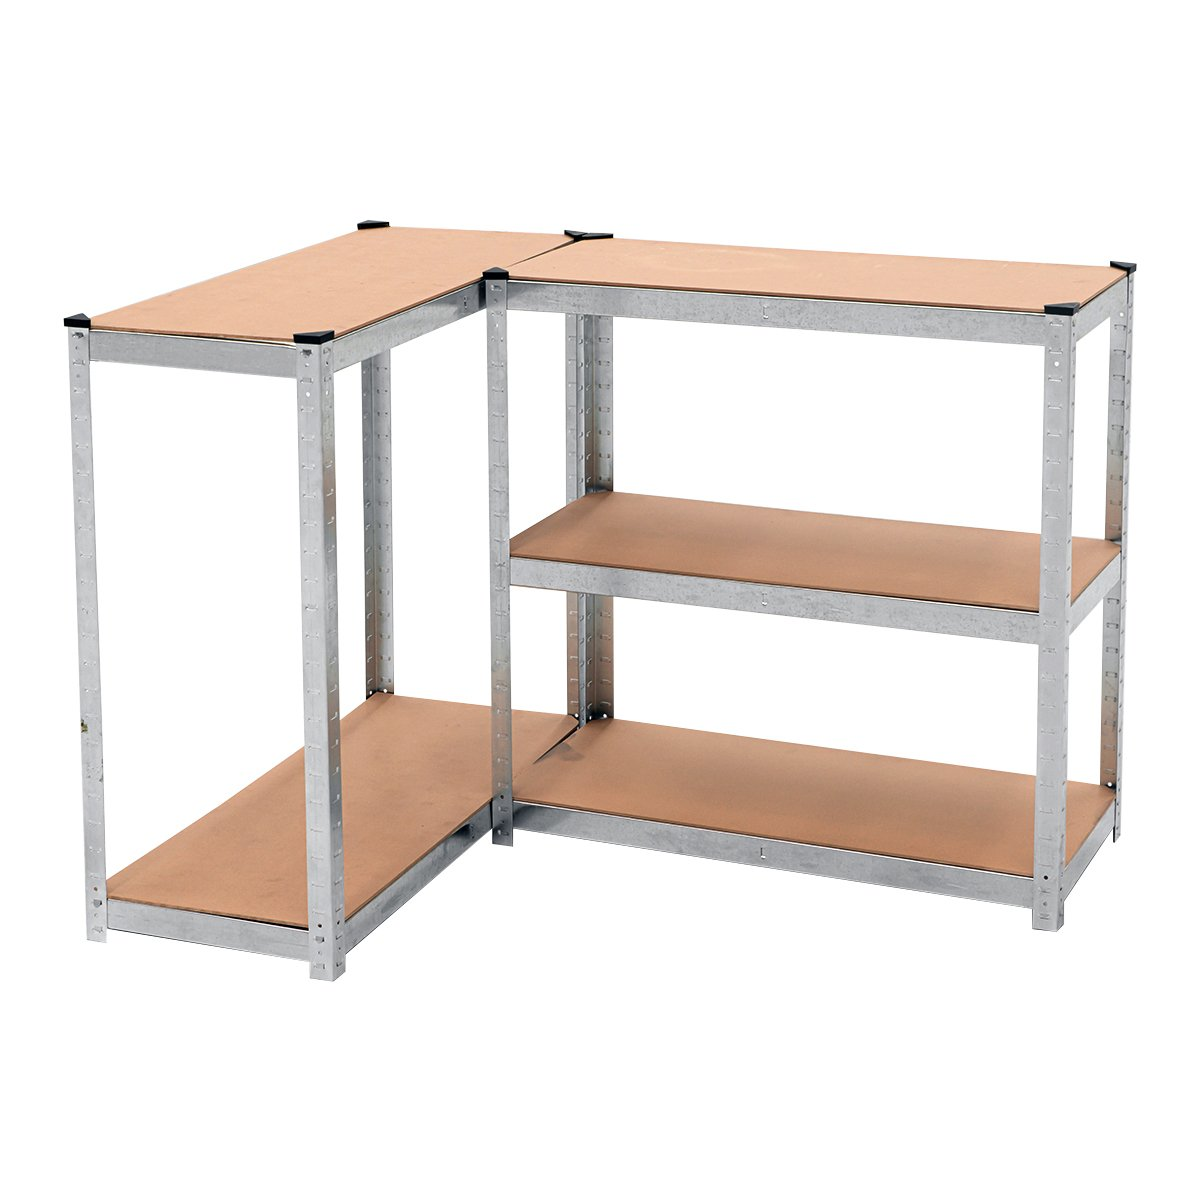 5 Shelf Adjustable Storage Rack Work Table Galvanized Steel 180x90cm